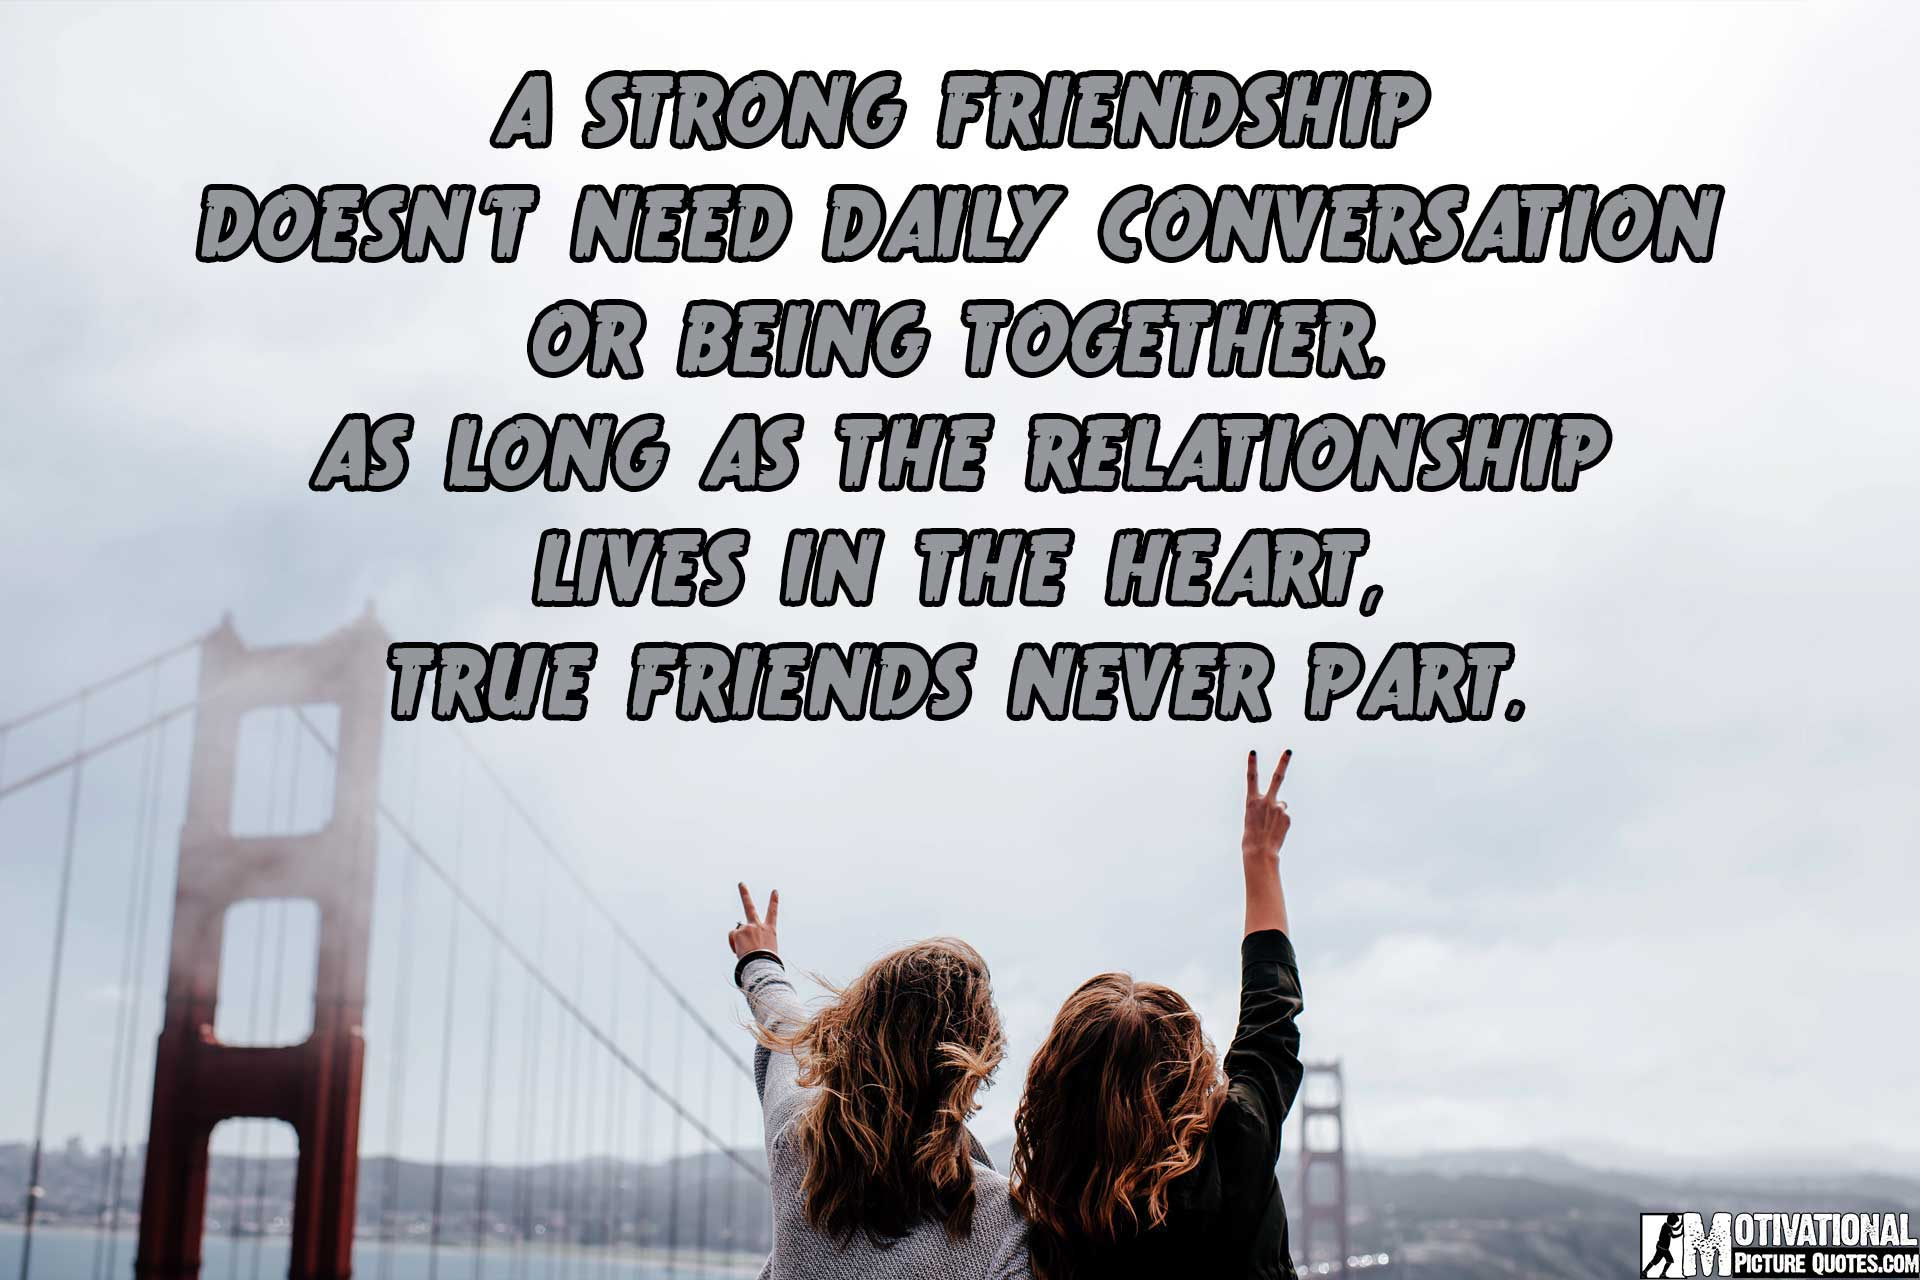 Quotes About Love And Friendship: 25+ Inspirational Friendship Quotes Images